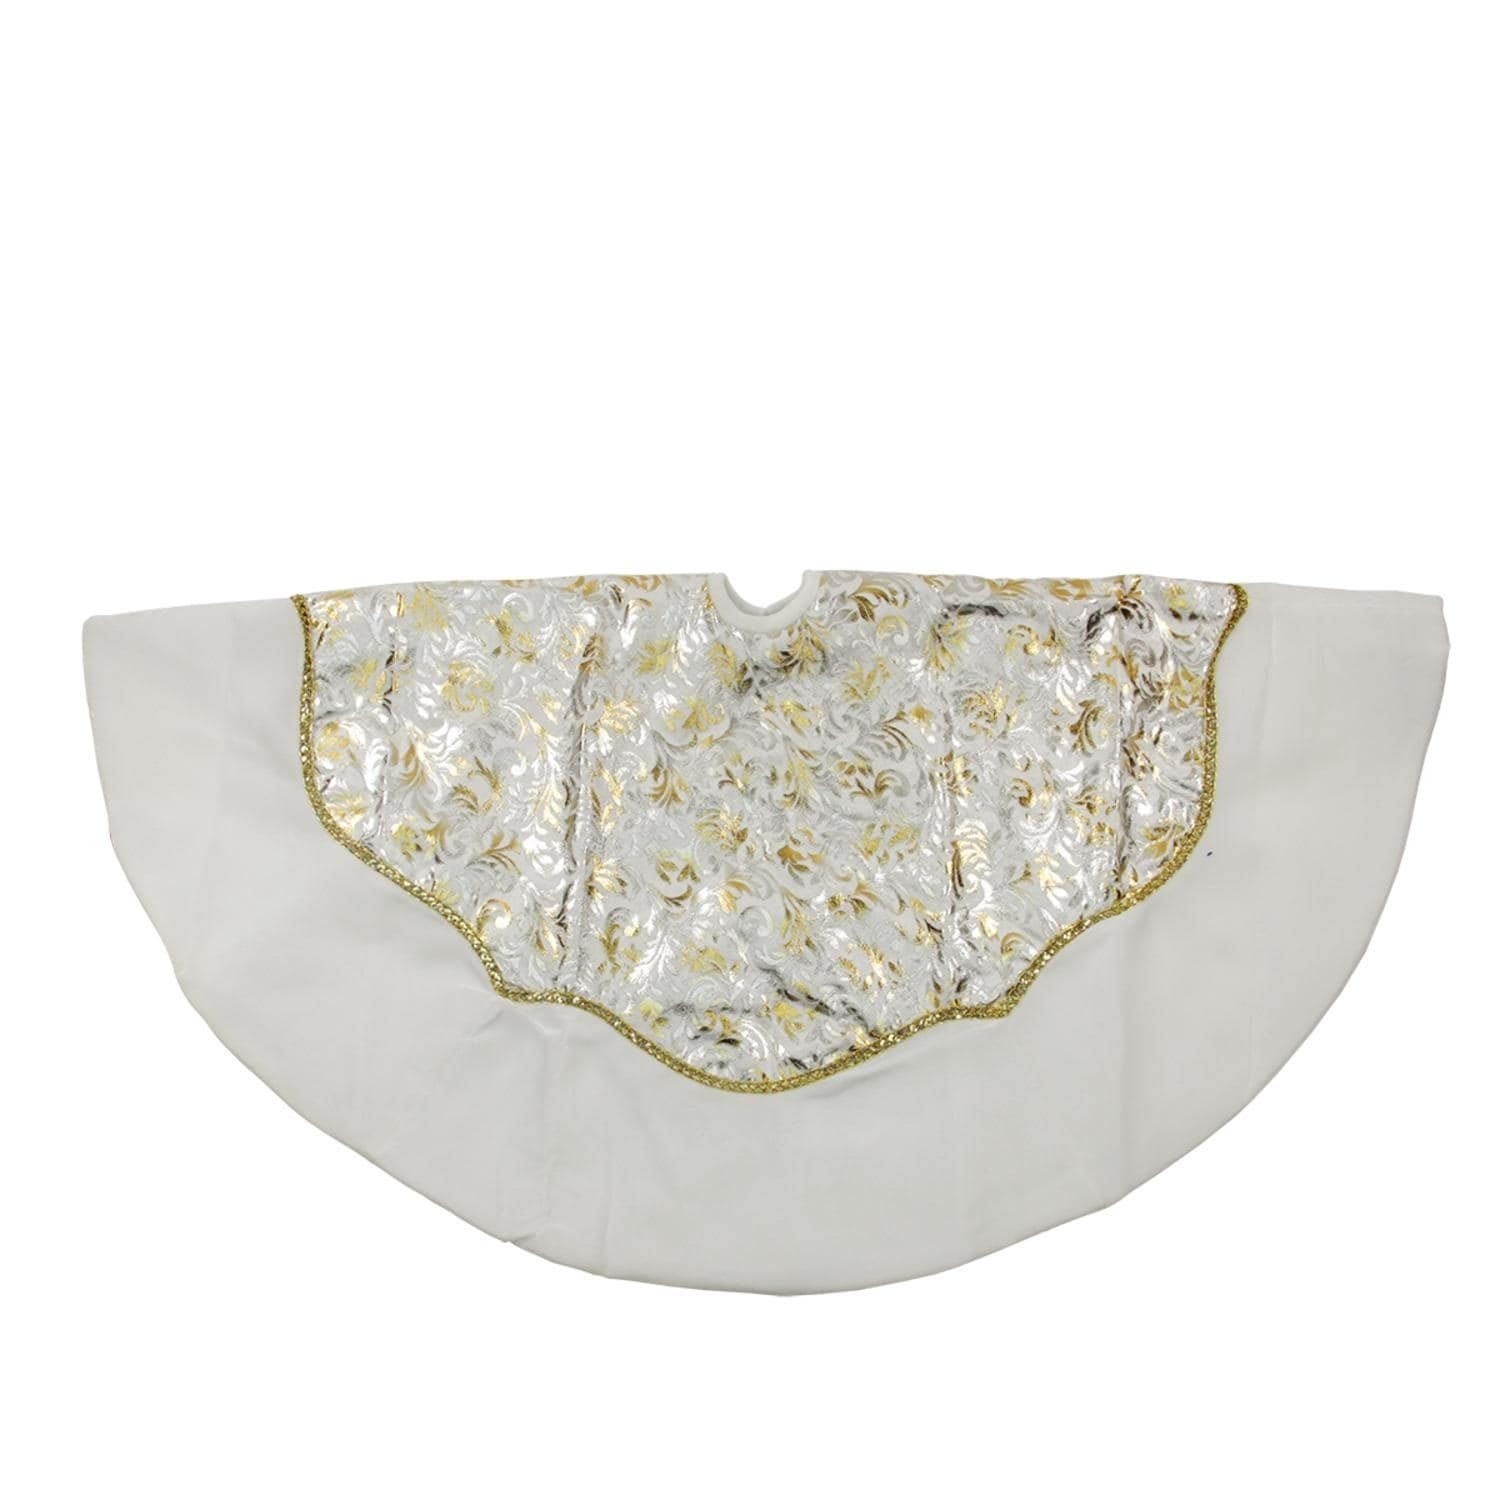 48 Gold And Silver Flourish Christmas Tree Skirt With White Velveteen Trim